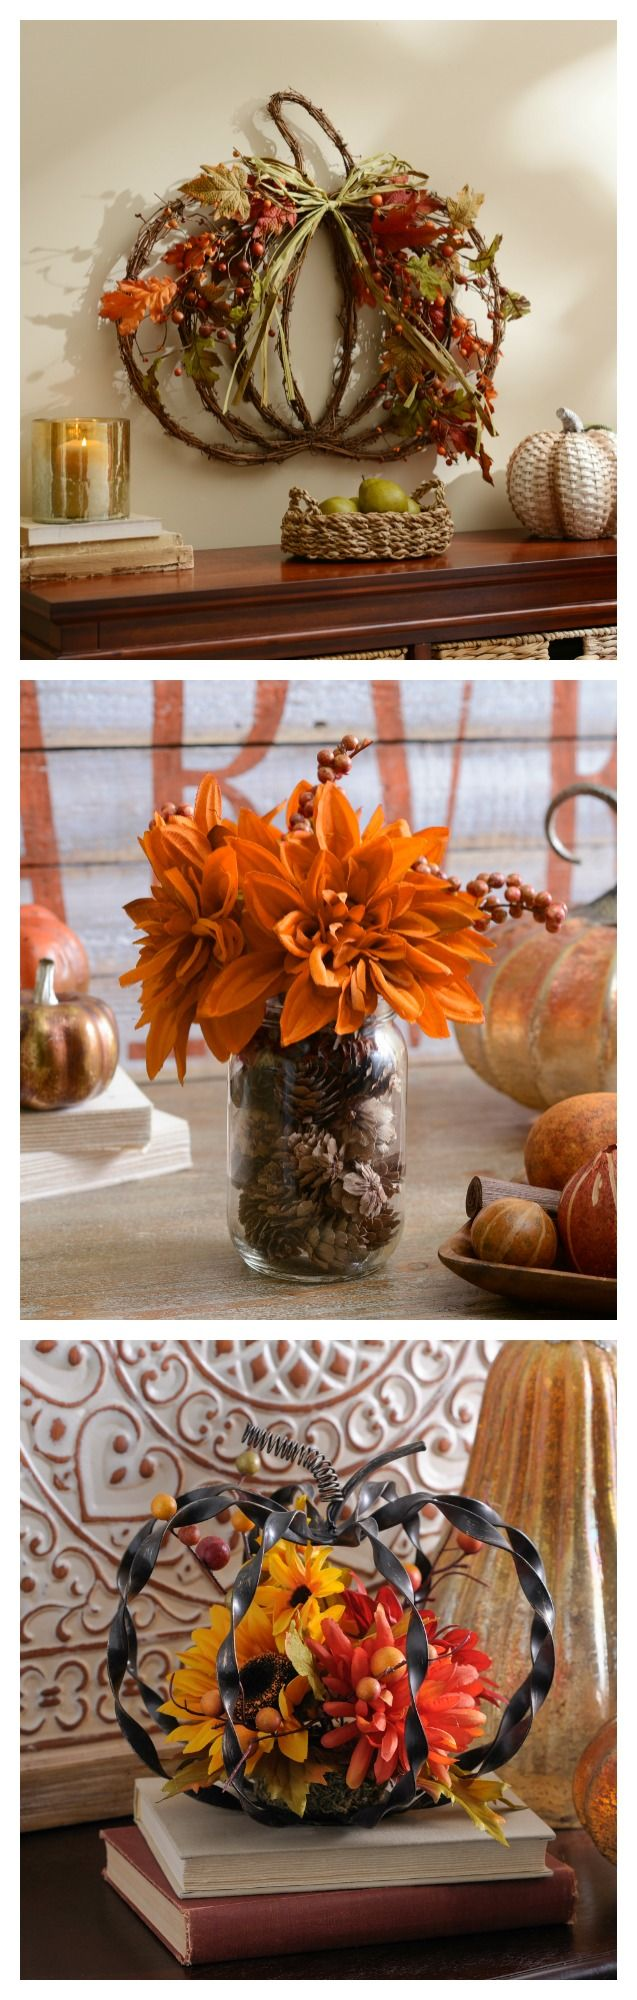 best 20 harvest decorations ideas on pinterest fall harvest decorations fall decor lanterns and fall porch decorations - Harvest Decorations